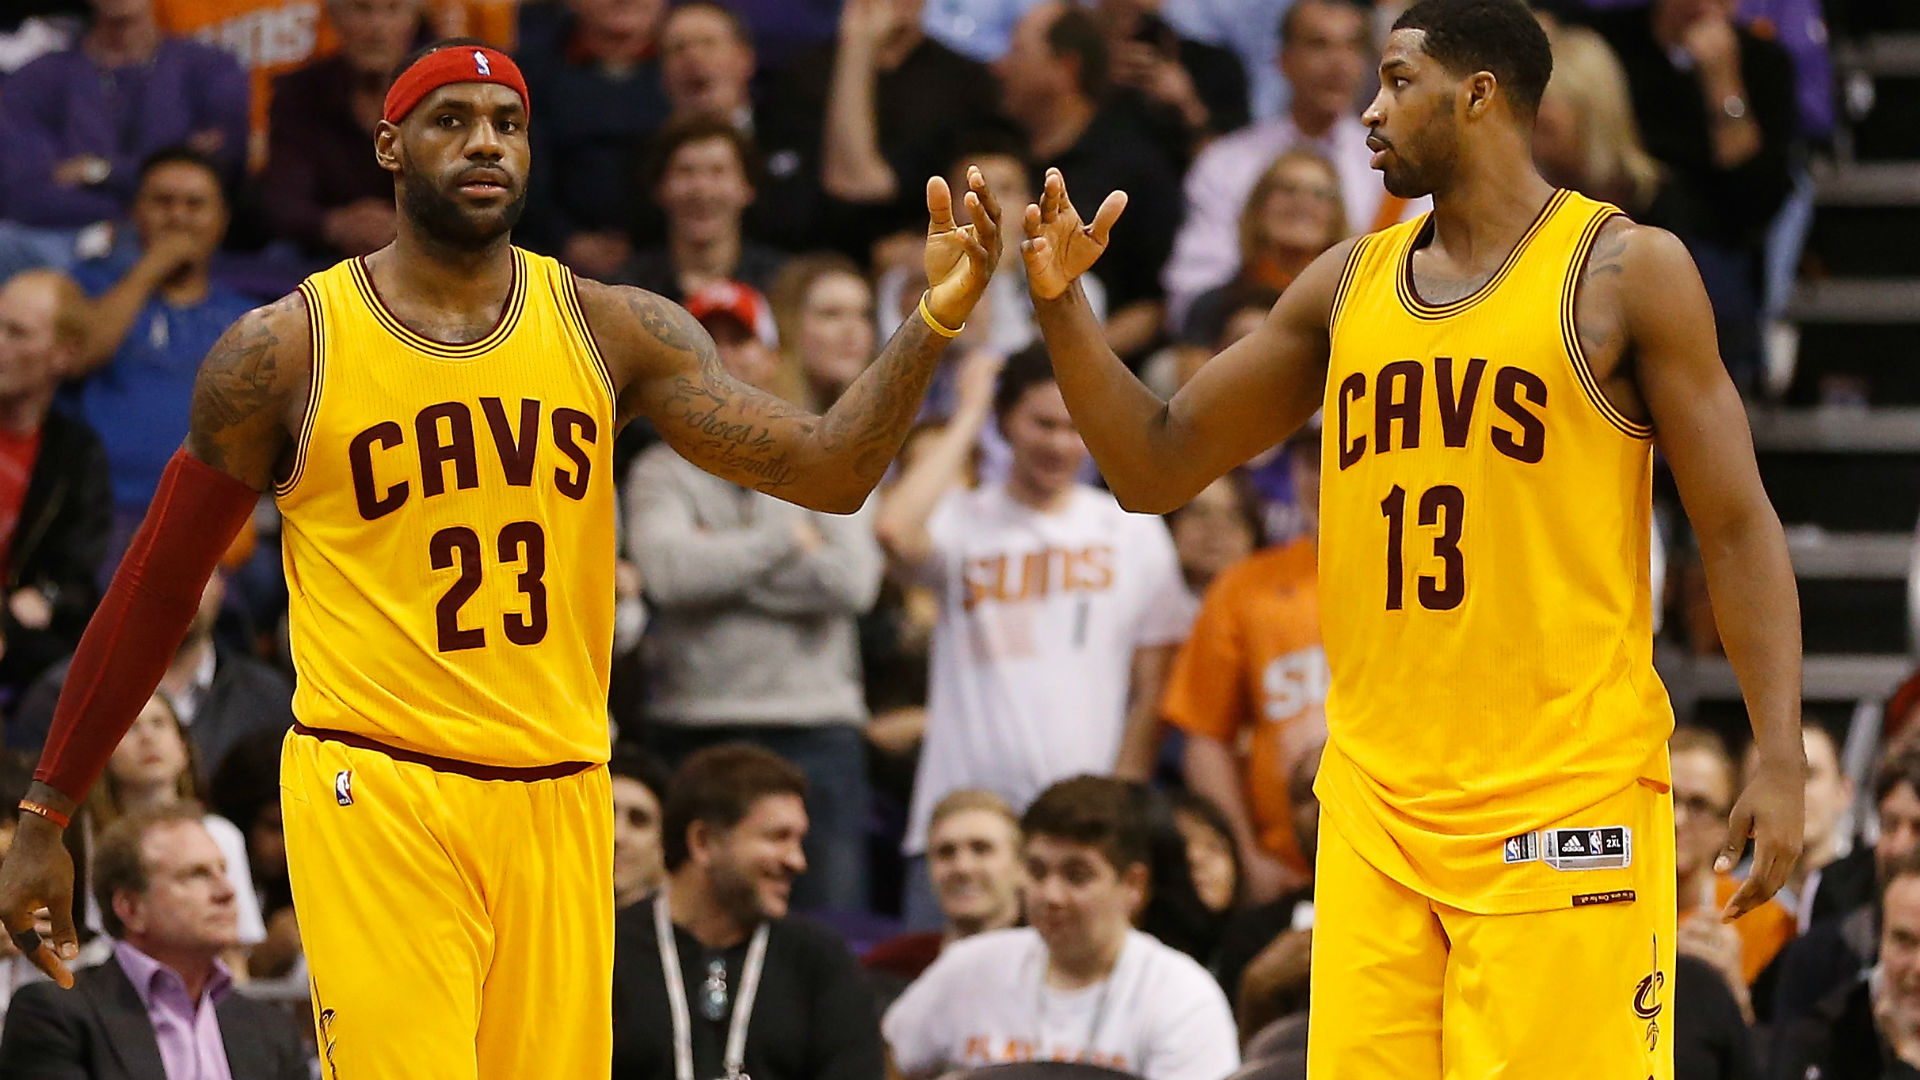 Report: LeBron James won't talk to Cavs until they re-sign Tristan Thompson